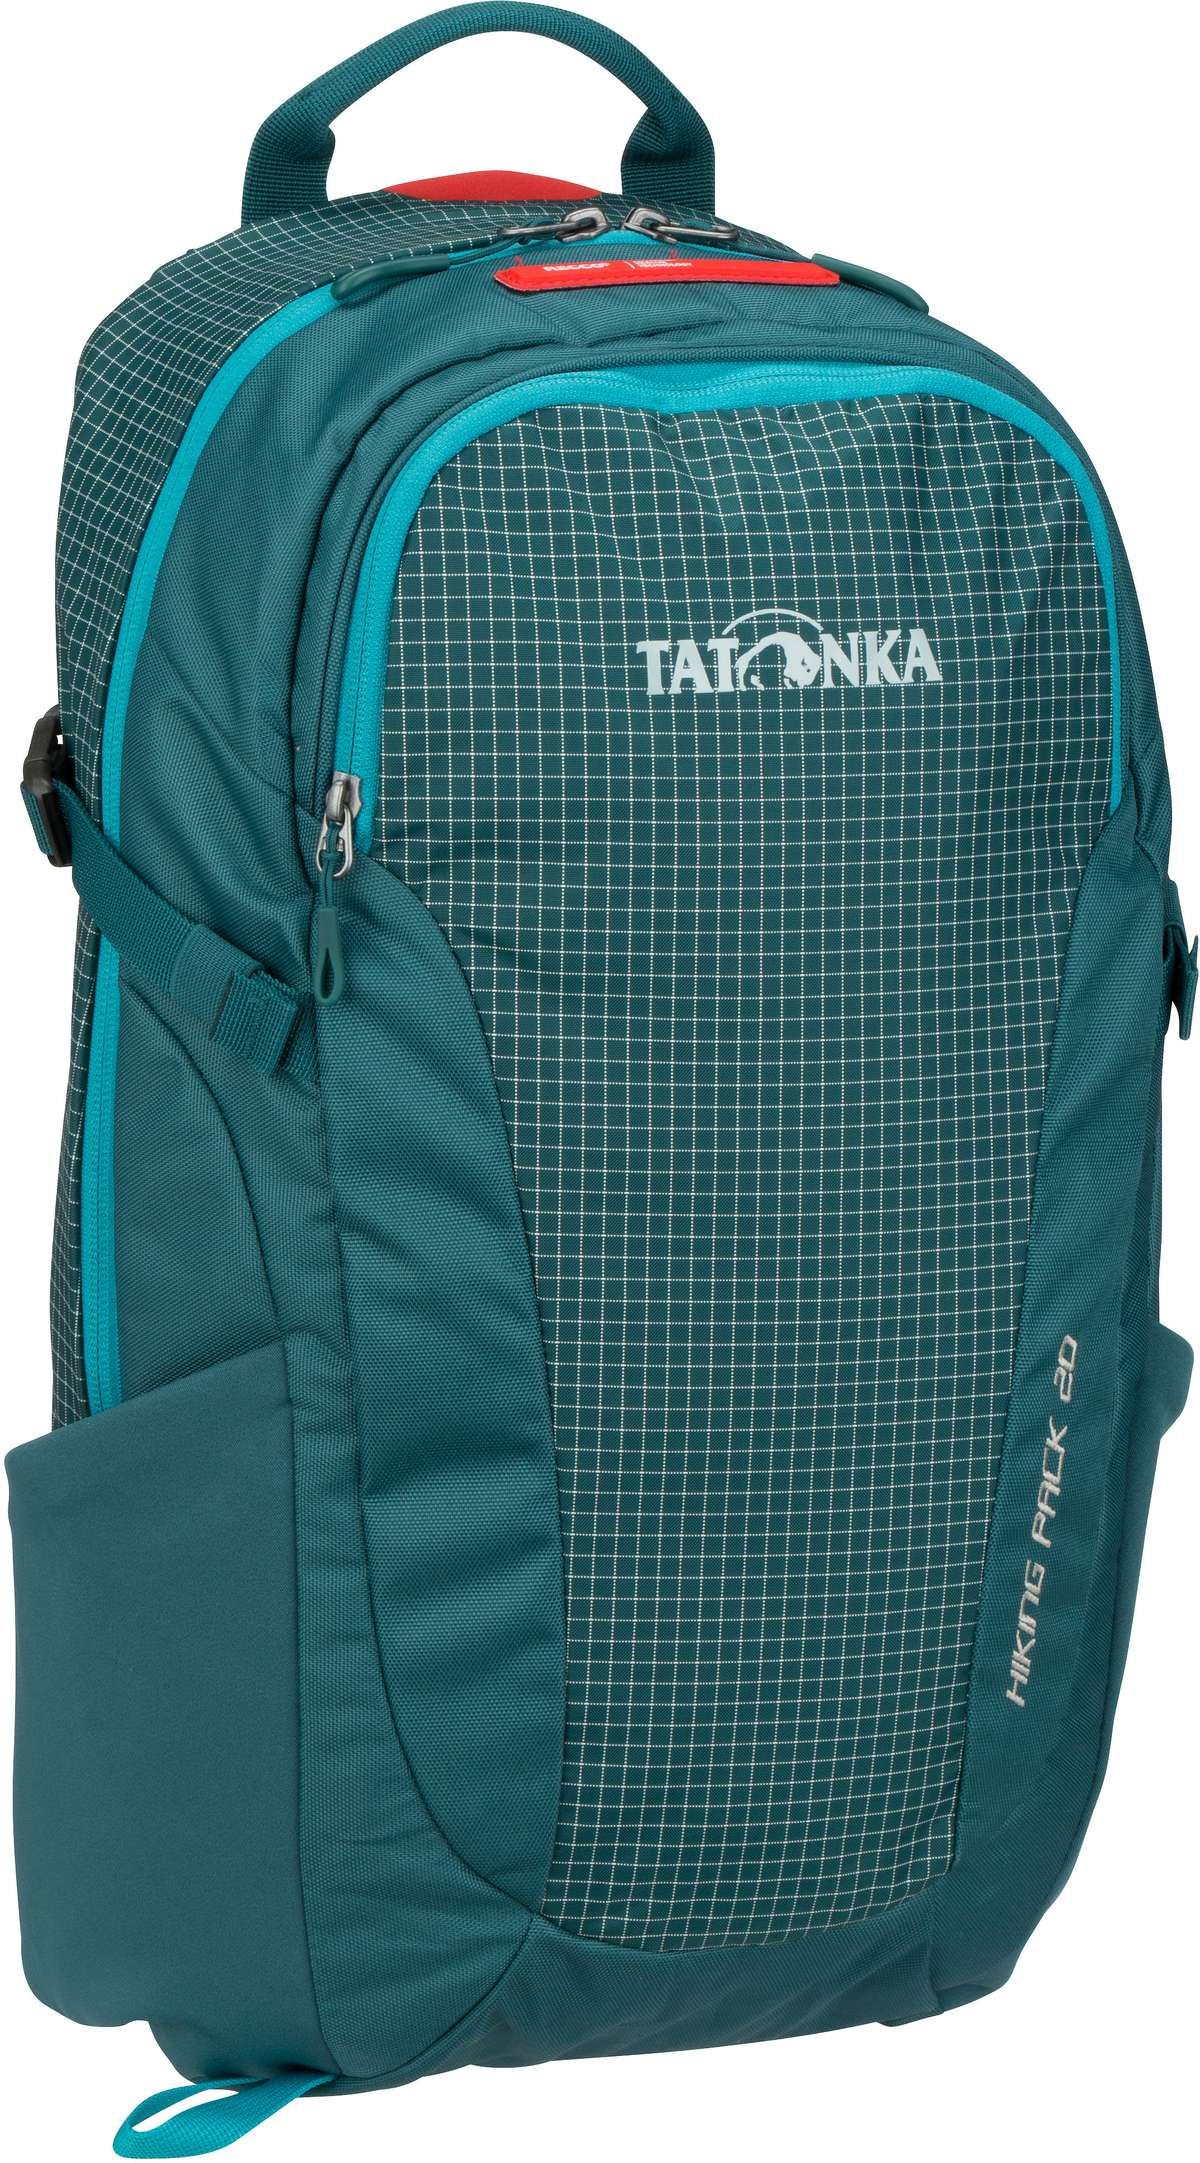 Wanderrucksack Hiking Pack 20 Teal Green (20 Liter)